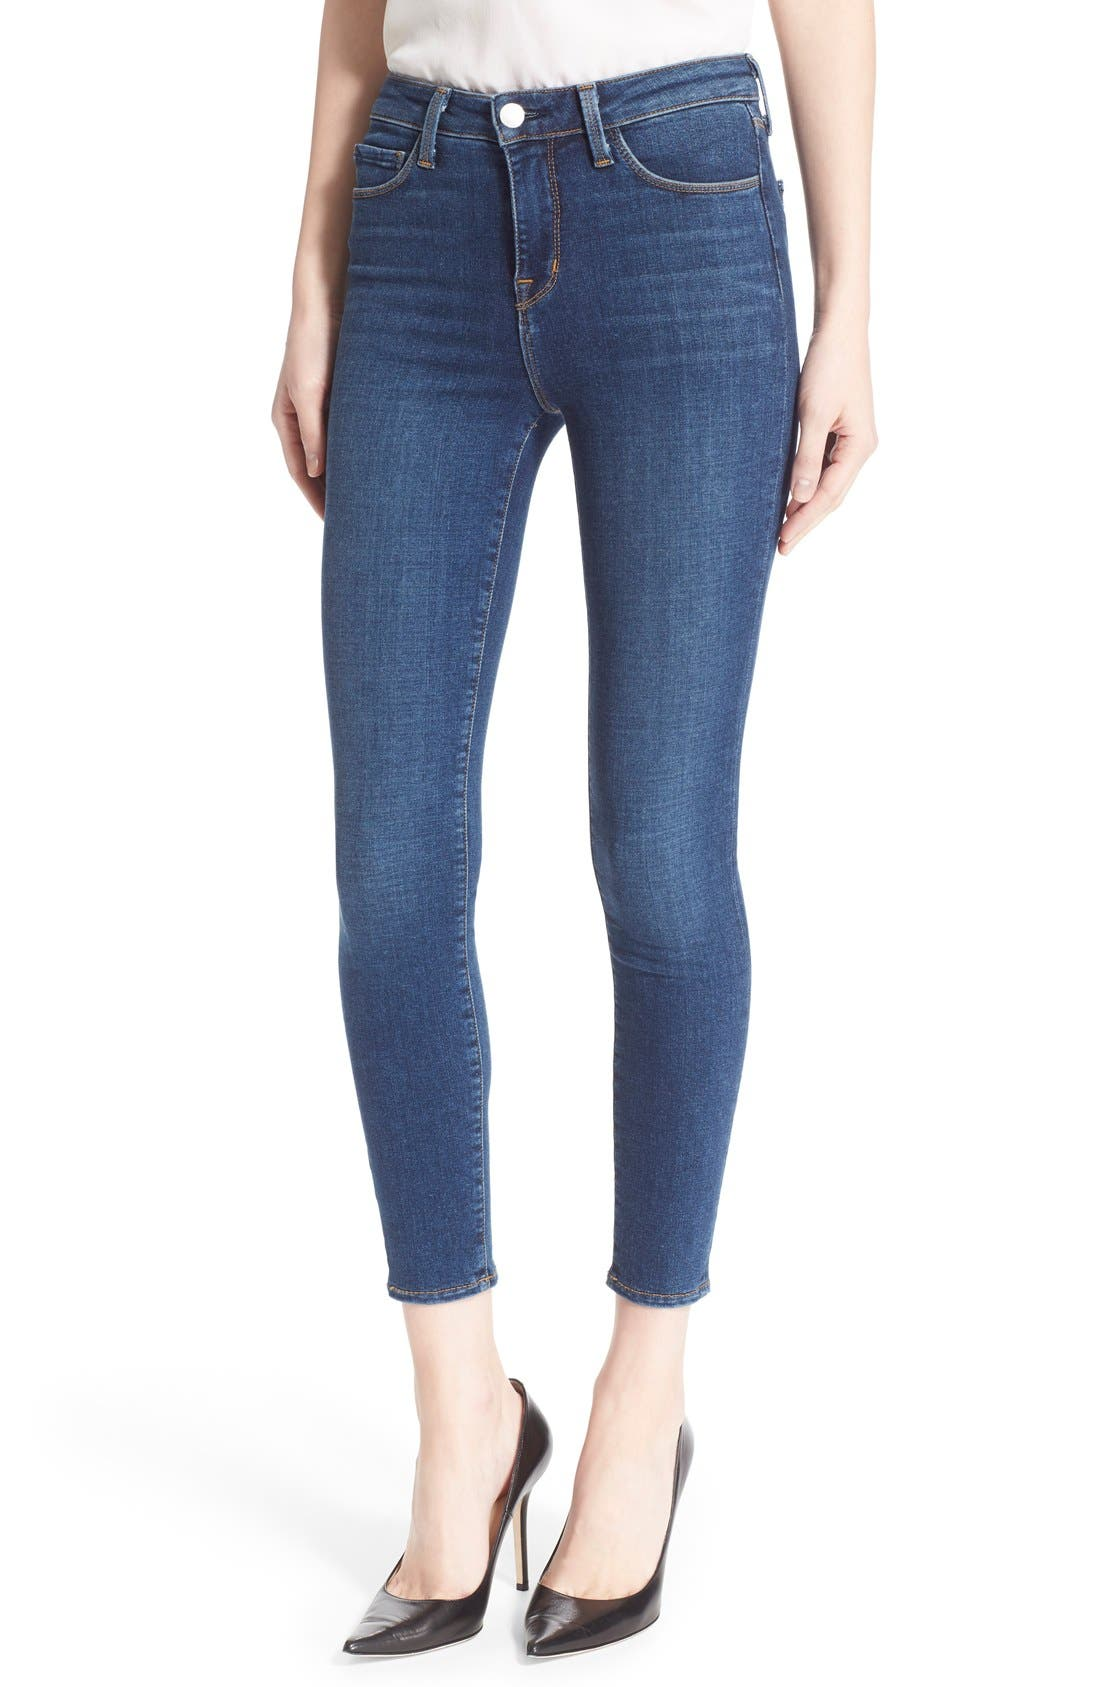 L'AGENCE Margot High Waist Crop Jeans